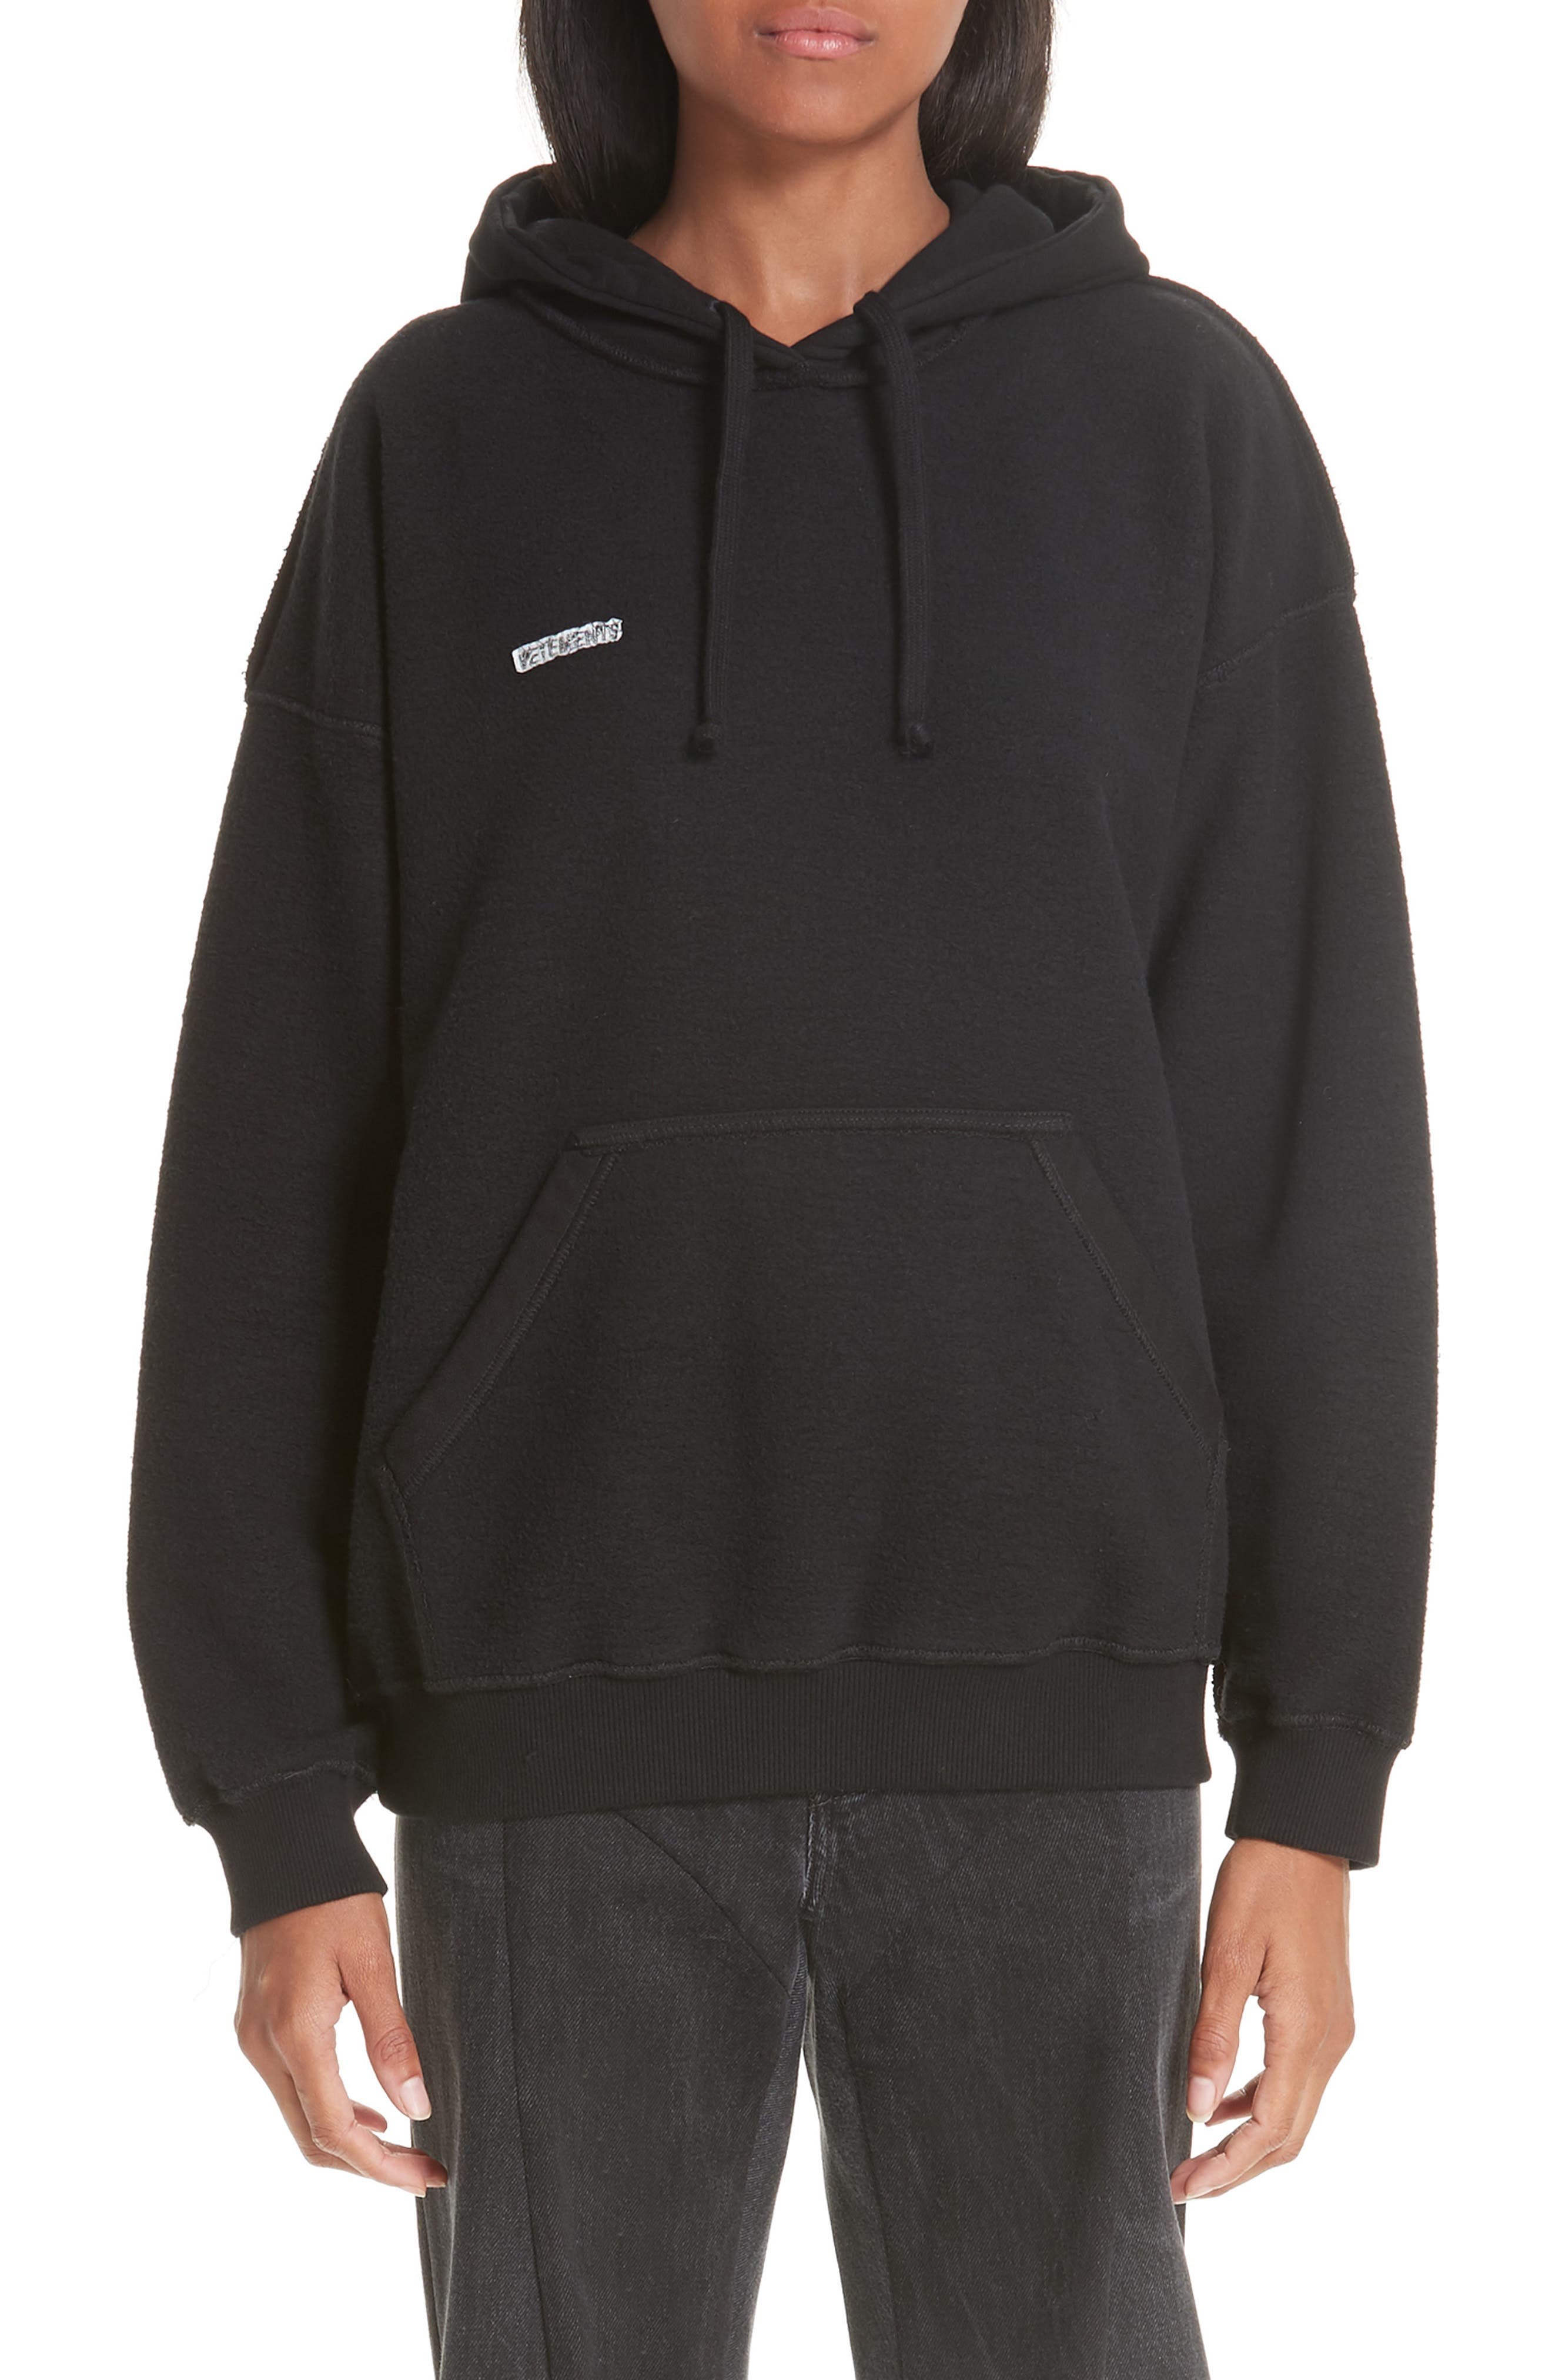 Inside-Out Hoodie,                             Main thumbnail 1, color,                             BLACK